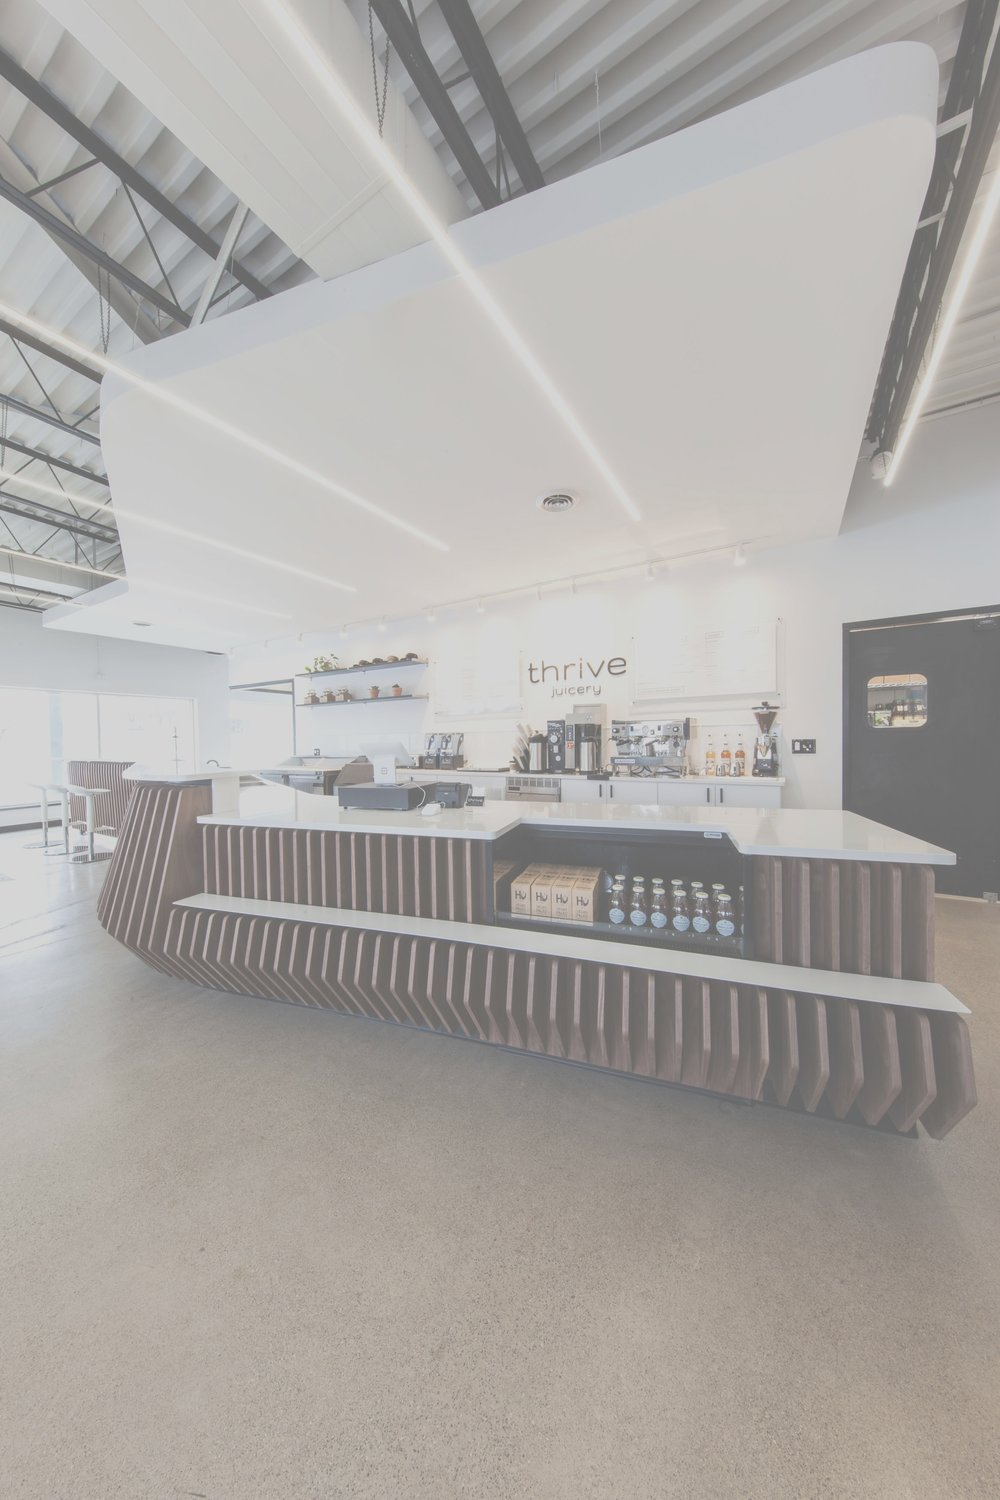 World Architecture and Design Awards : Commercial Interiors Category - Thrive Juicery : Winner